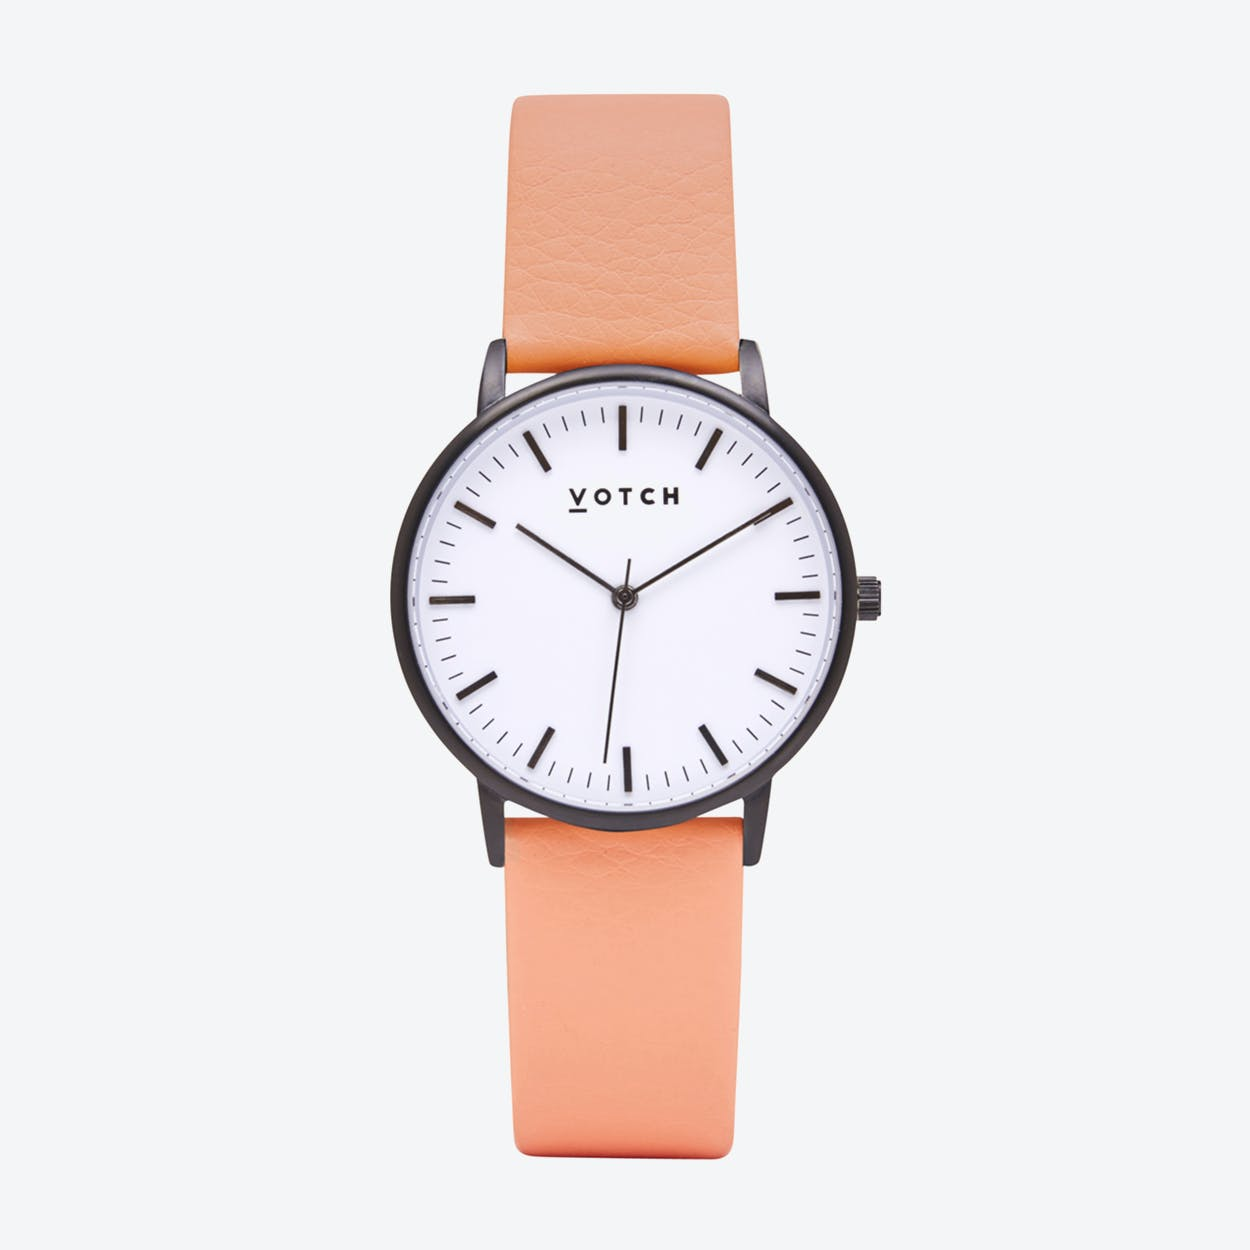 Intense Classic Watch in Black with White Face and Coral Vegan Leather Strap, 36mm